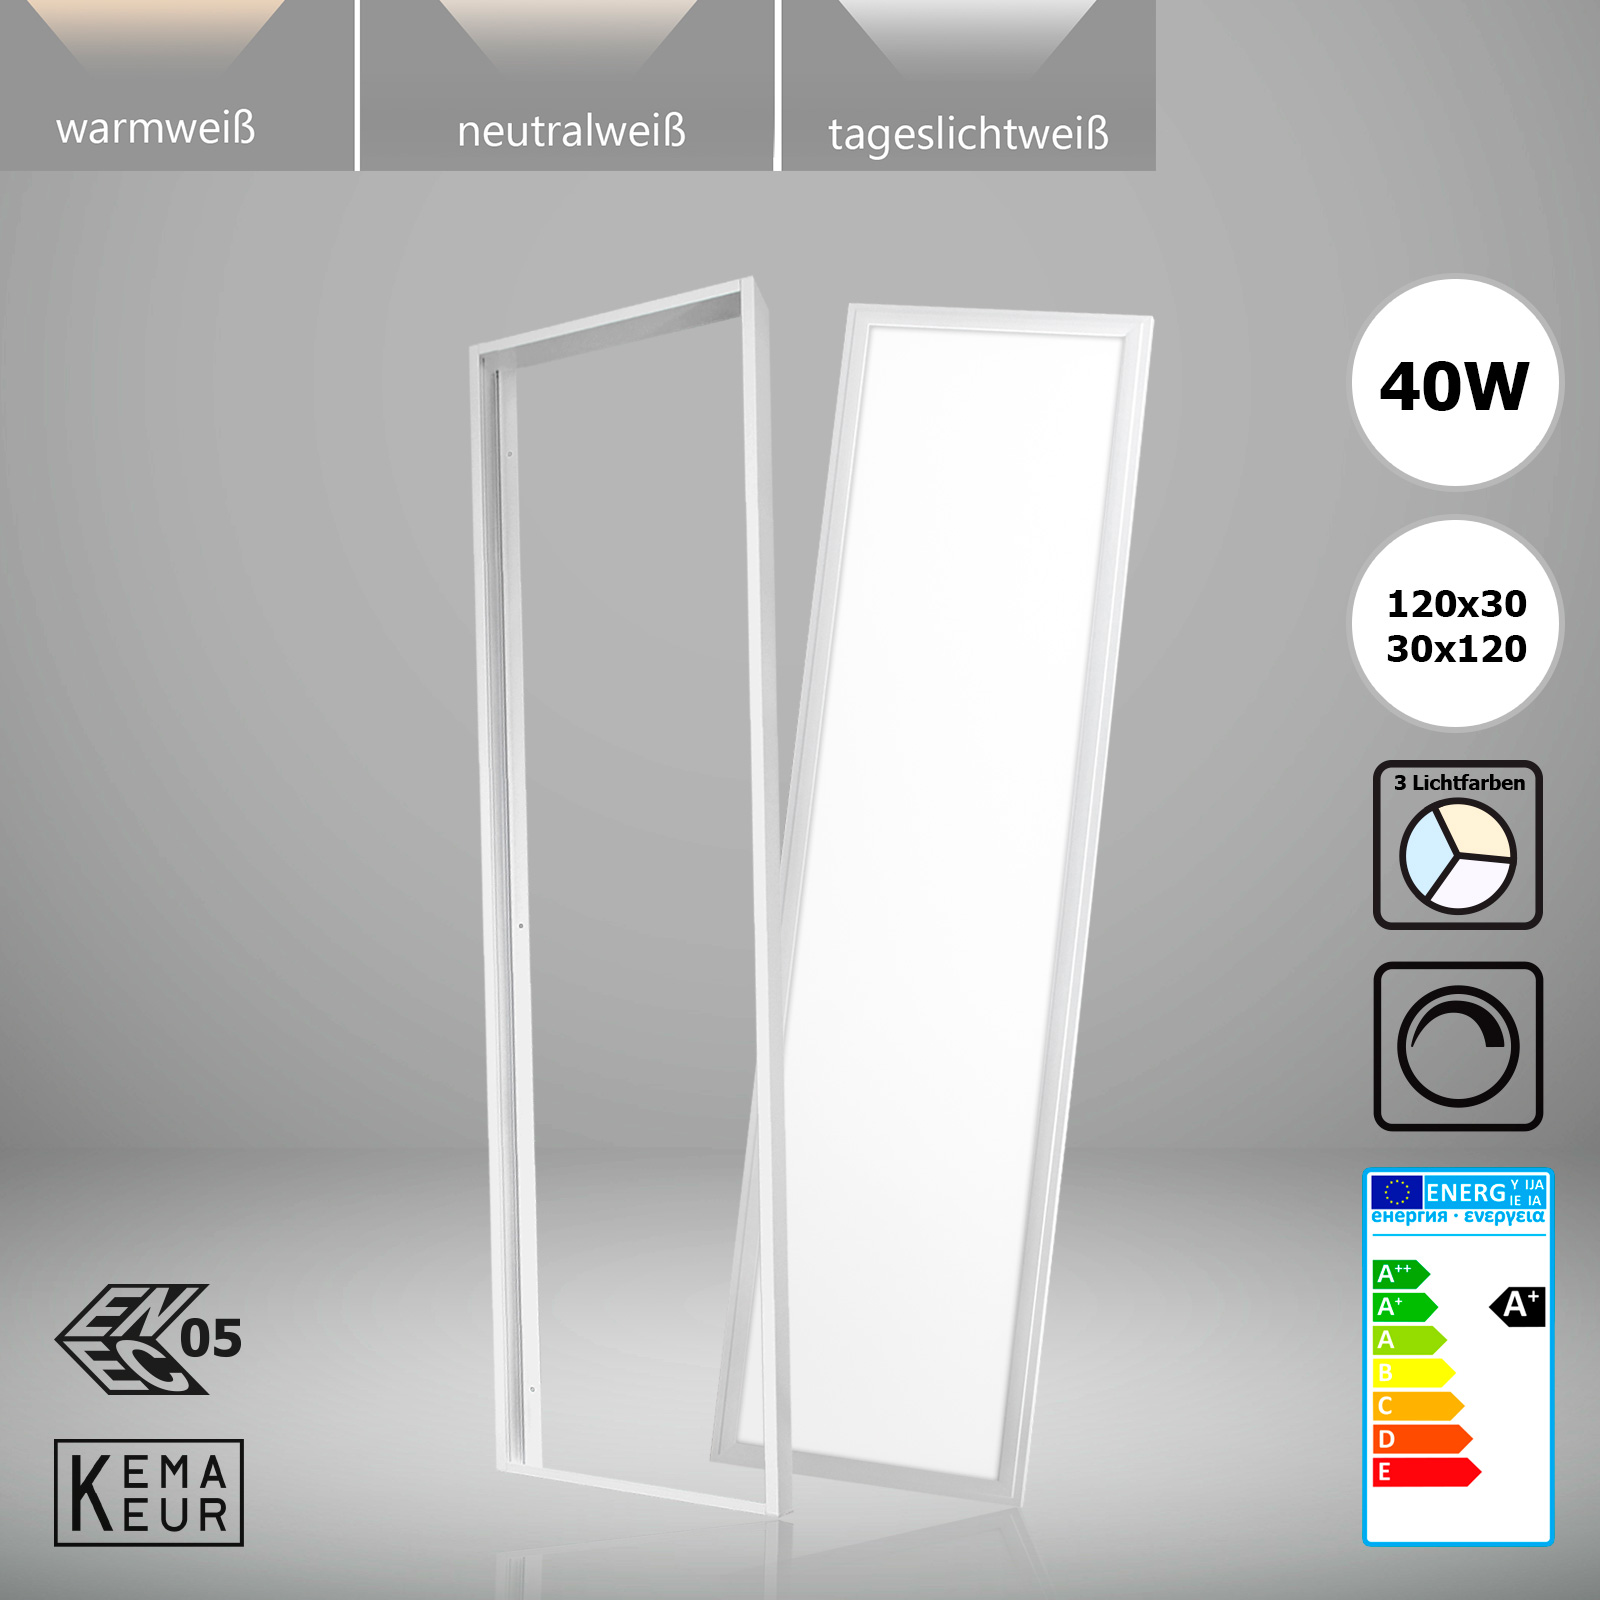 Led Panel Tageslicht Led Panel 120x30 Dimmbar 40w Deckenlampe Warmweiß